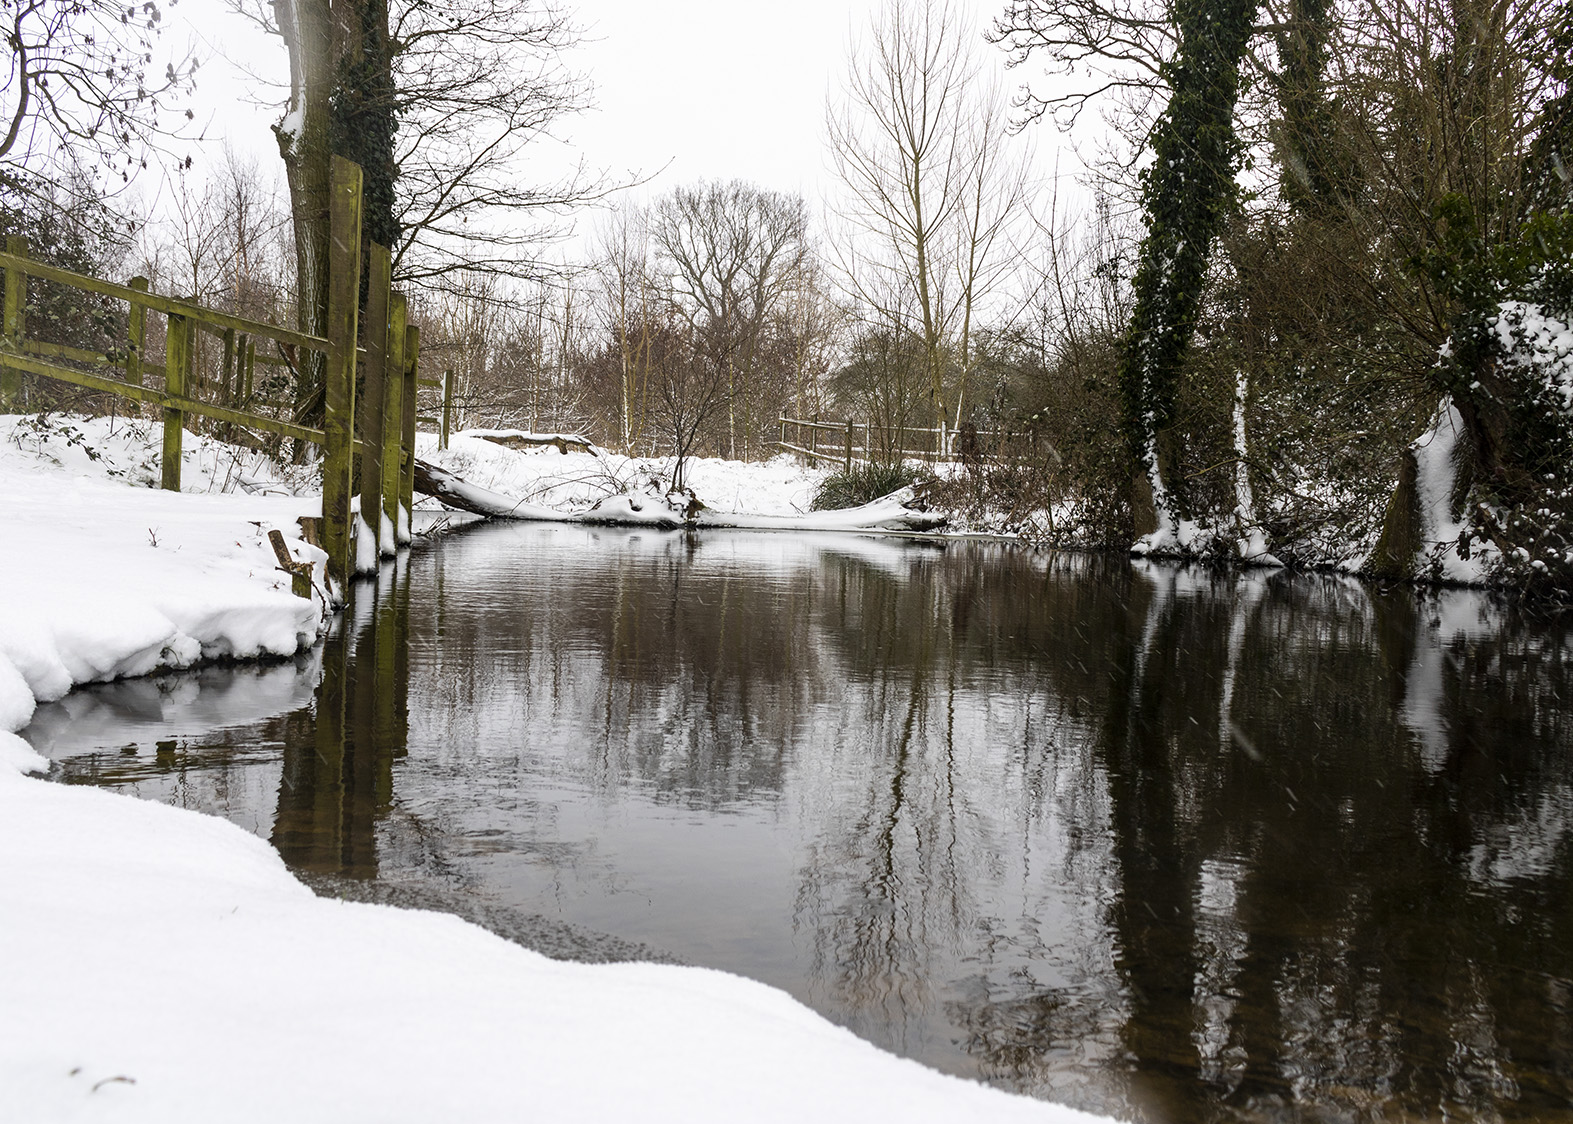 The pond at Quaker Wood, surrounded by snow